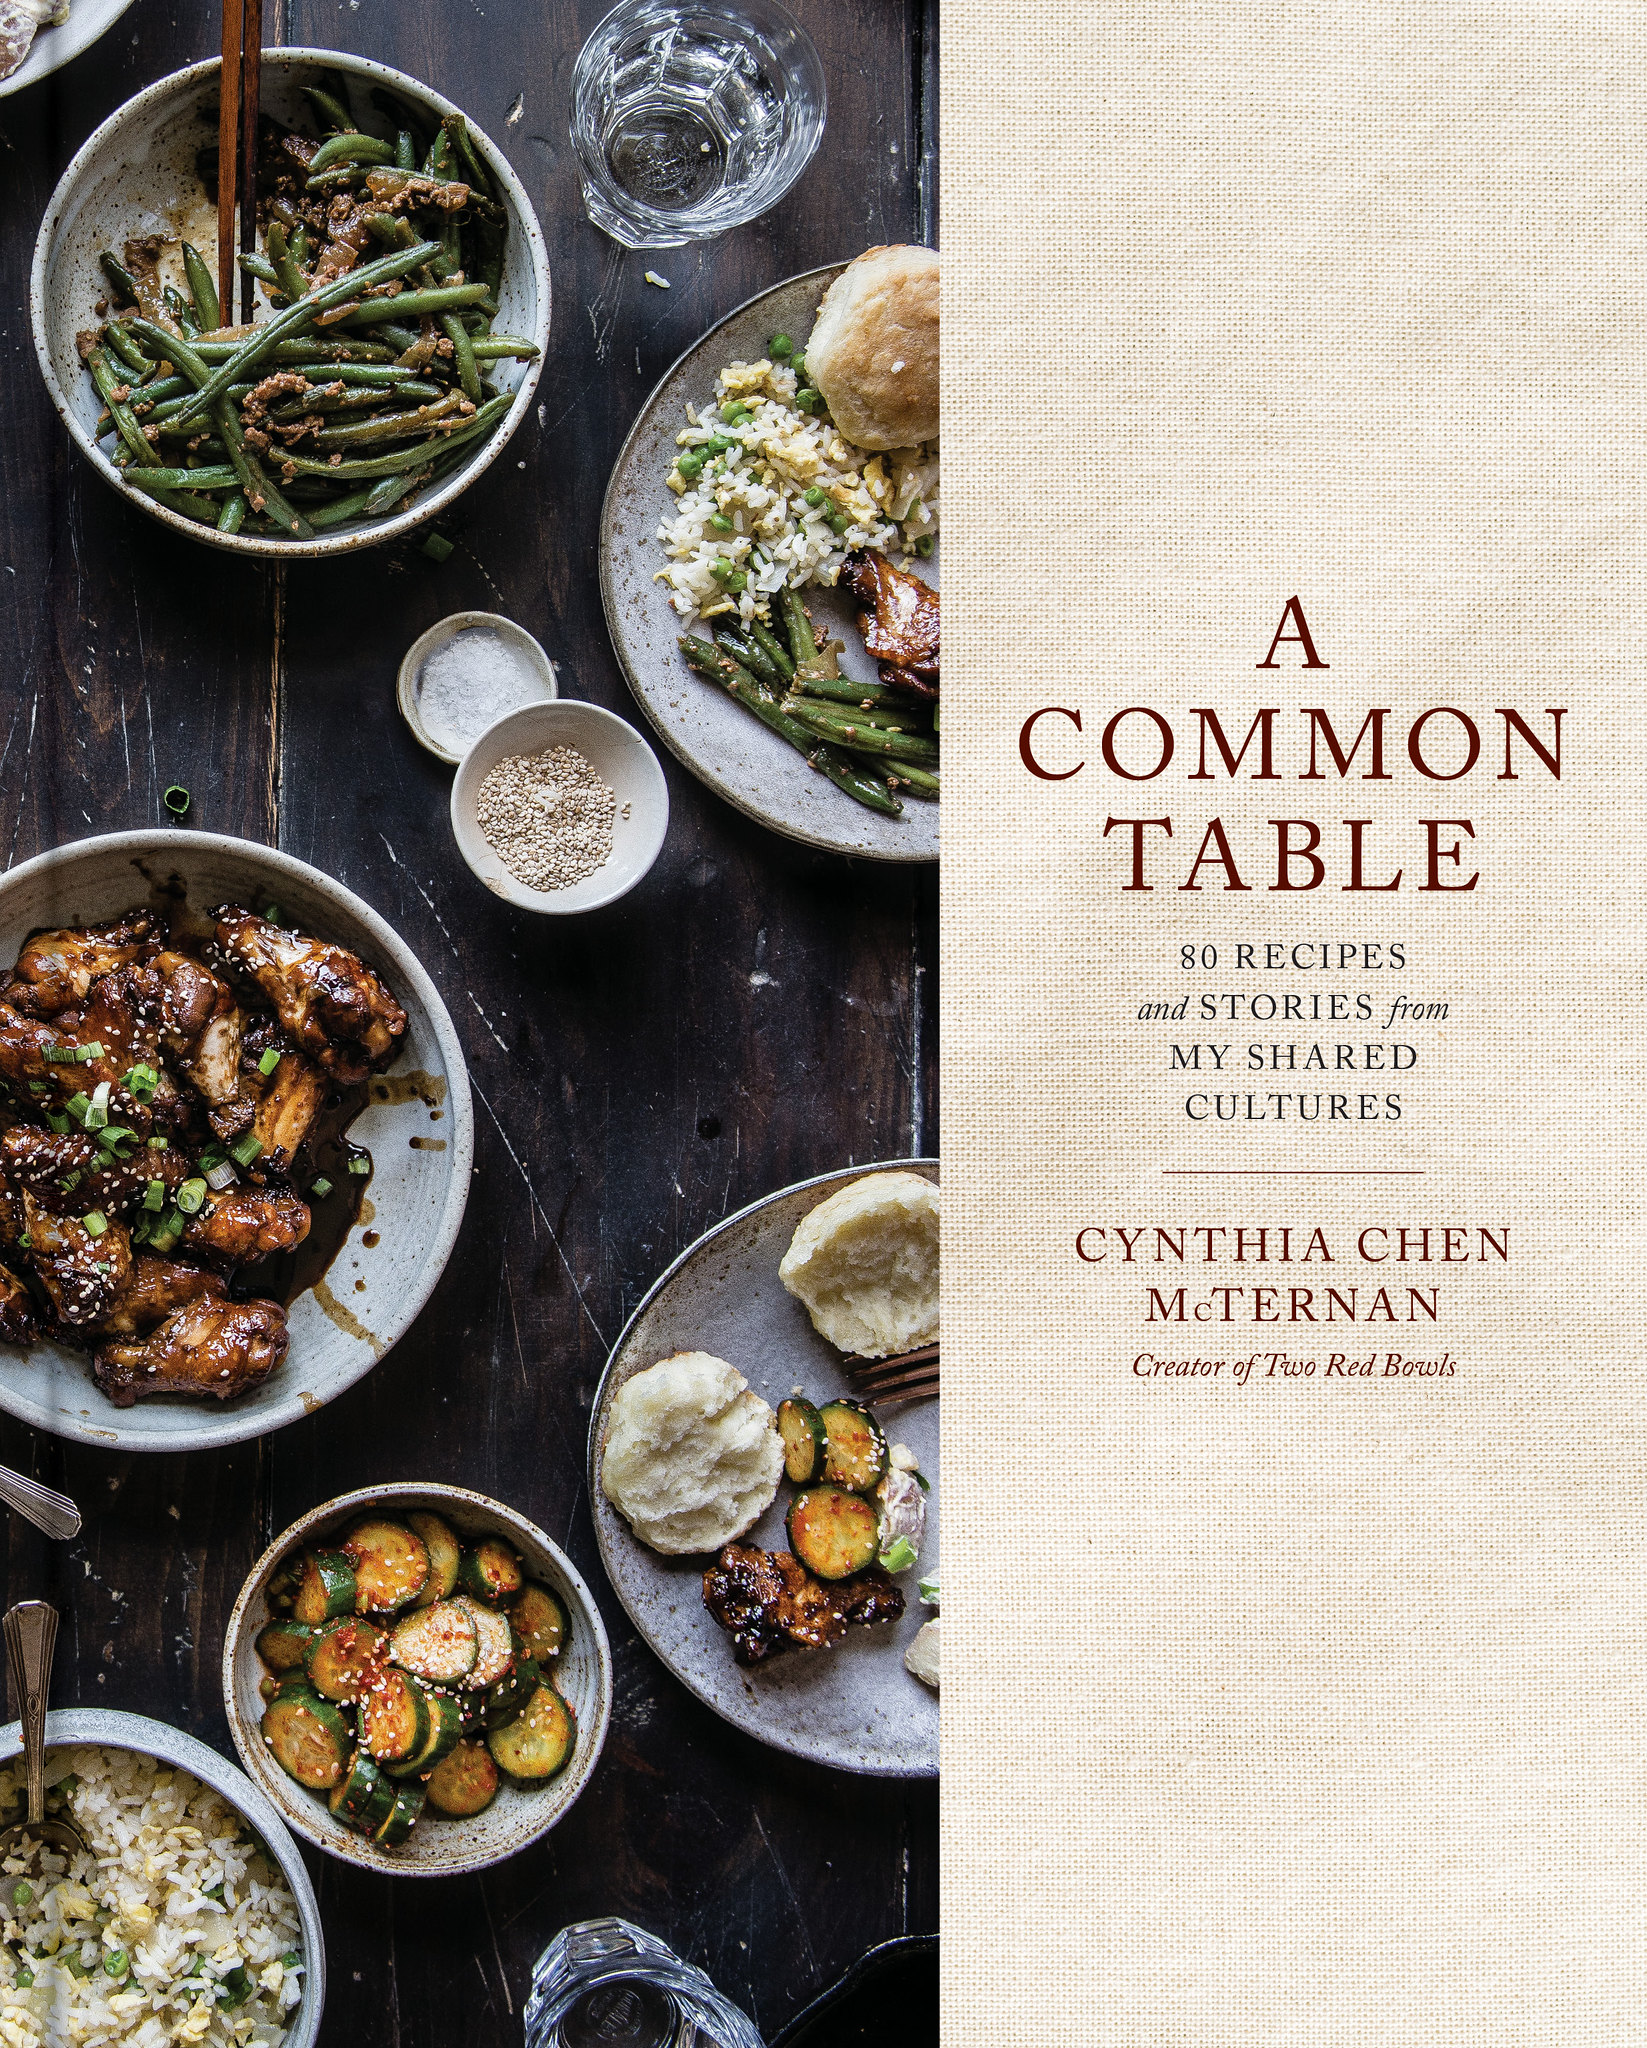 a common table cookbook: cover!